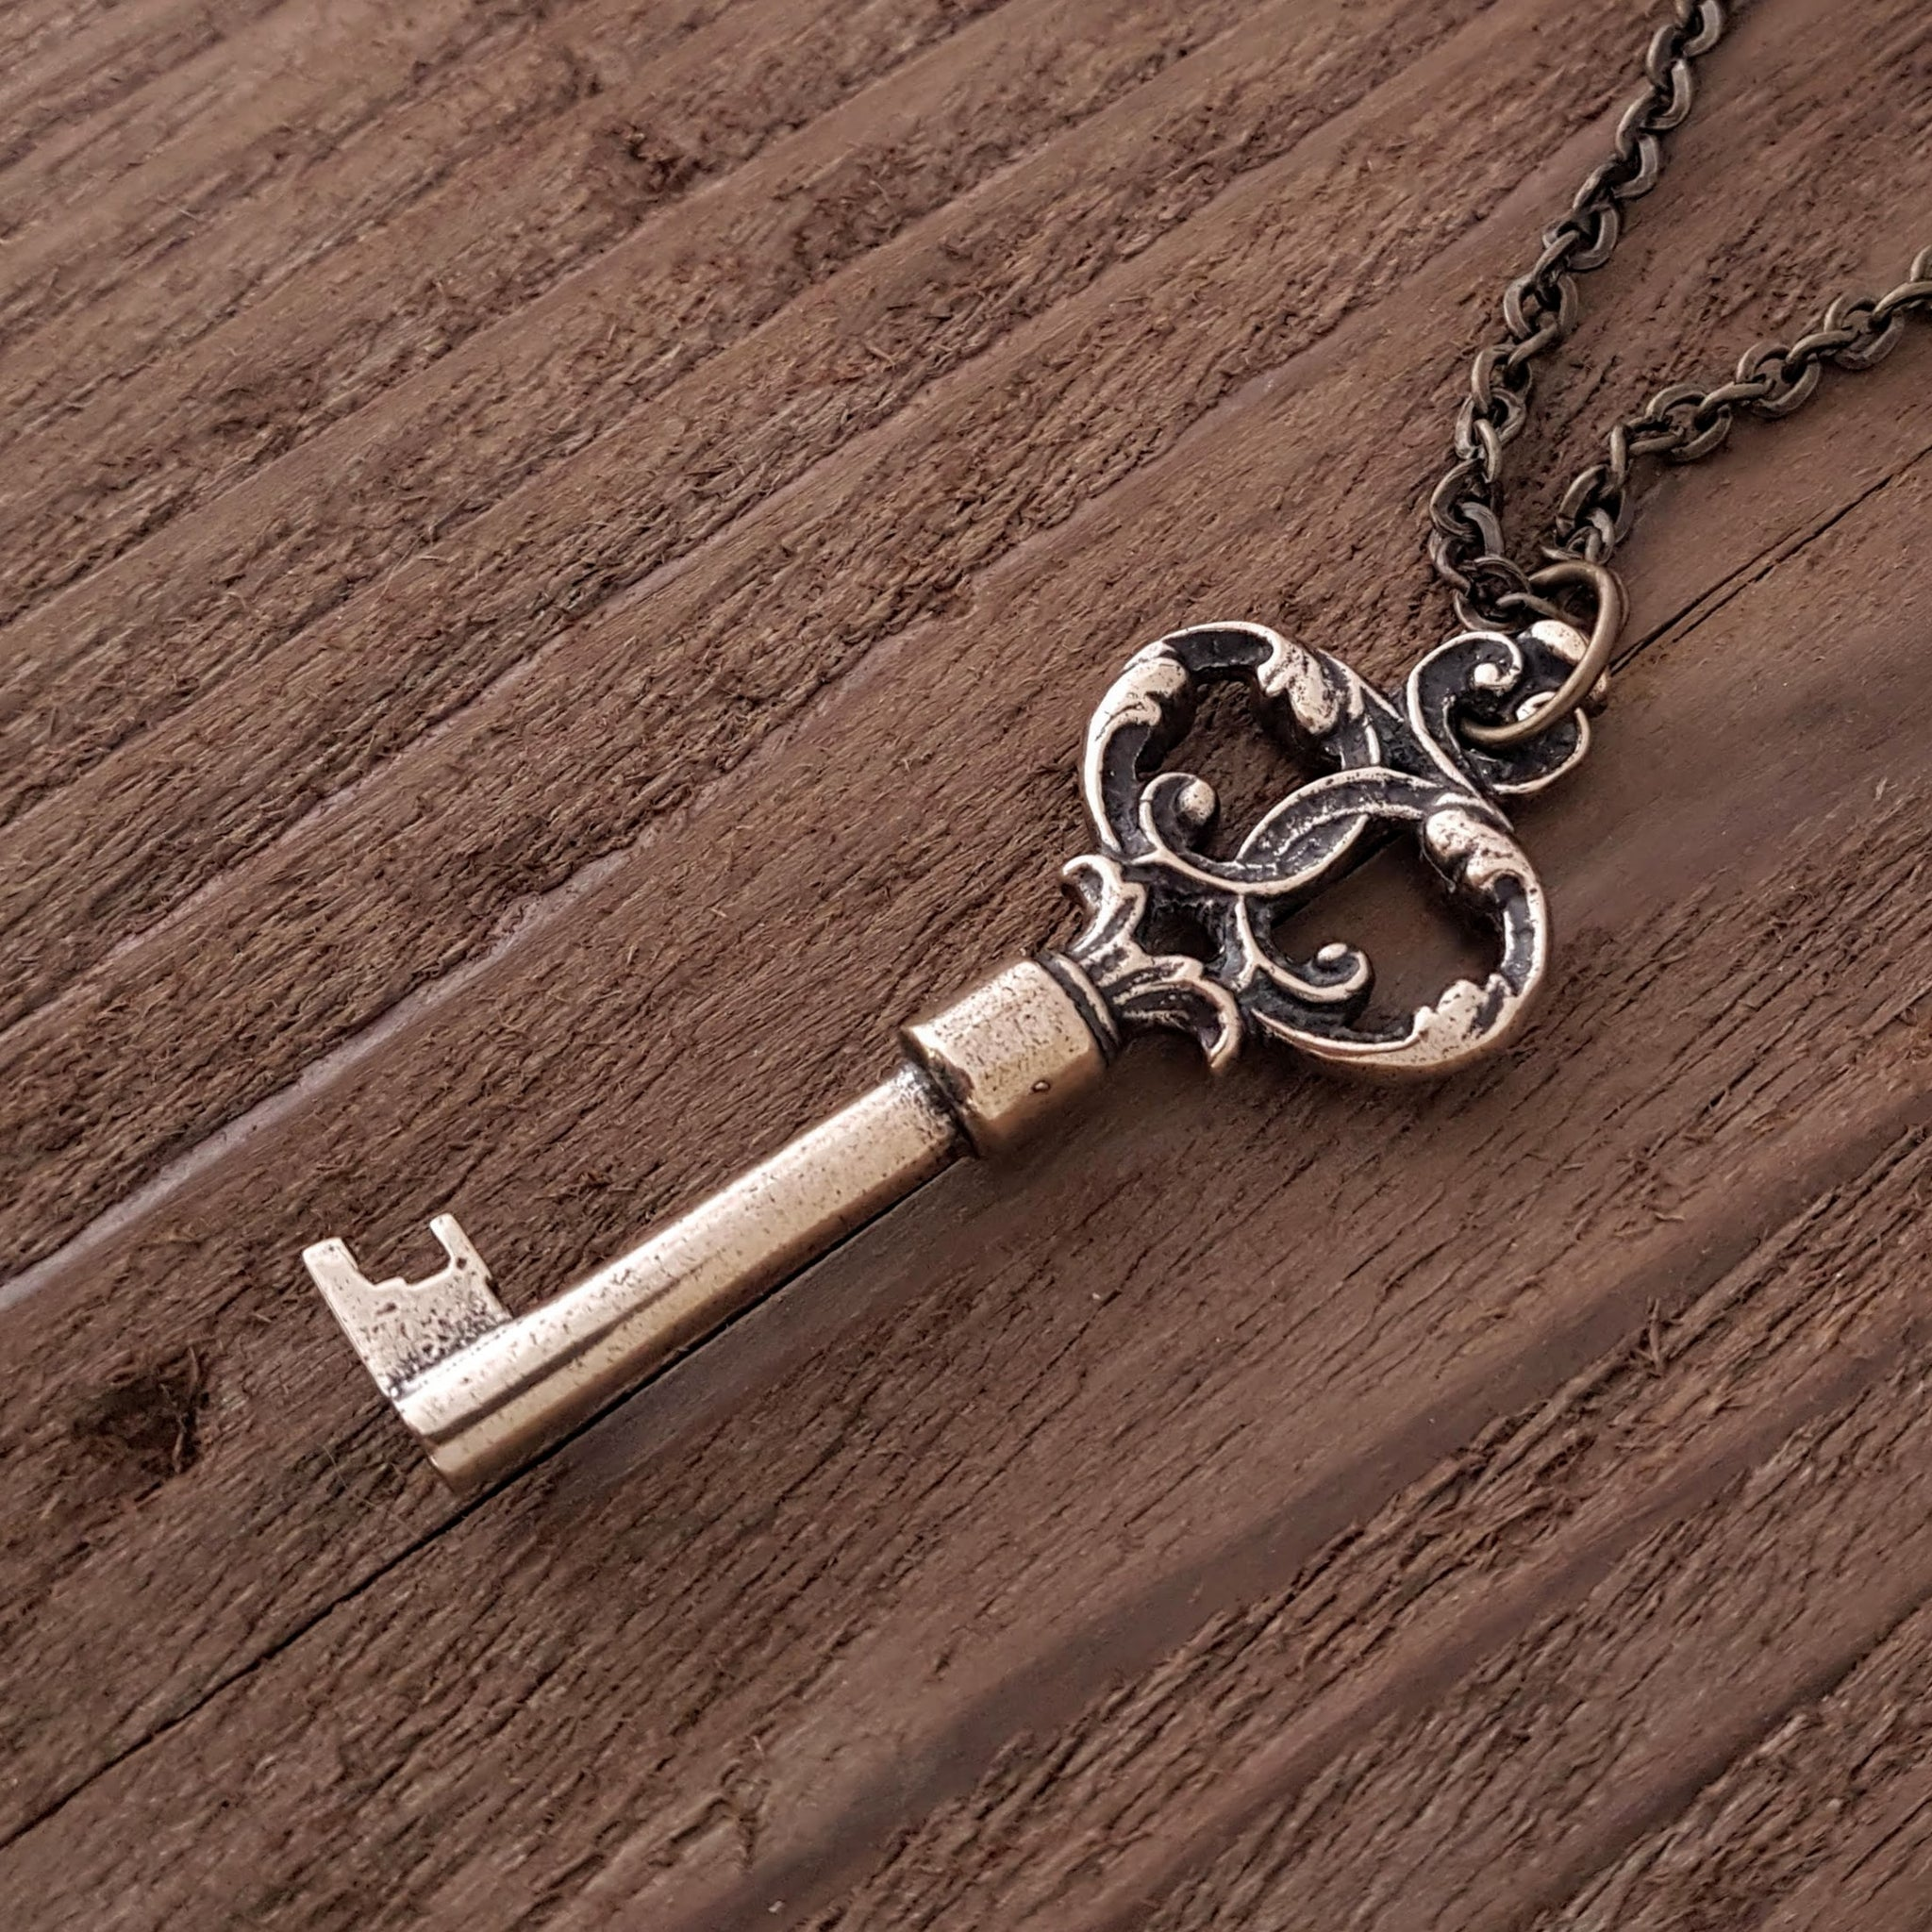 Ornate Victorian Skeleton Key Pendant - Gwen Delicious Jewelry Designs